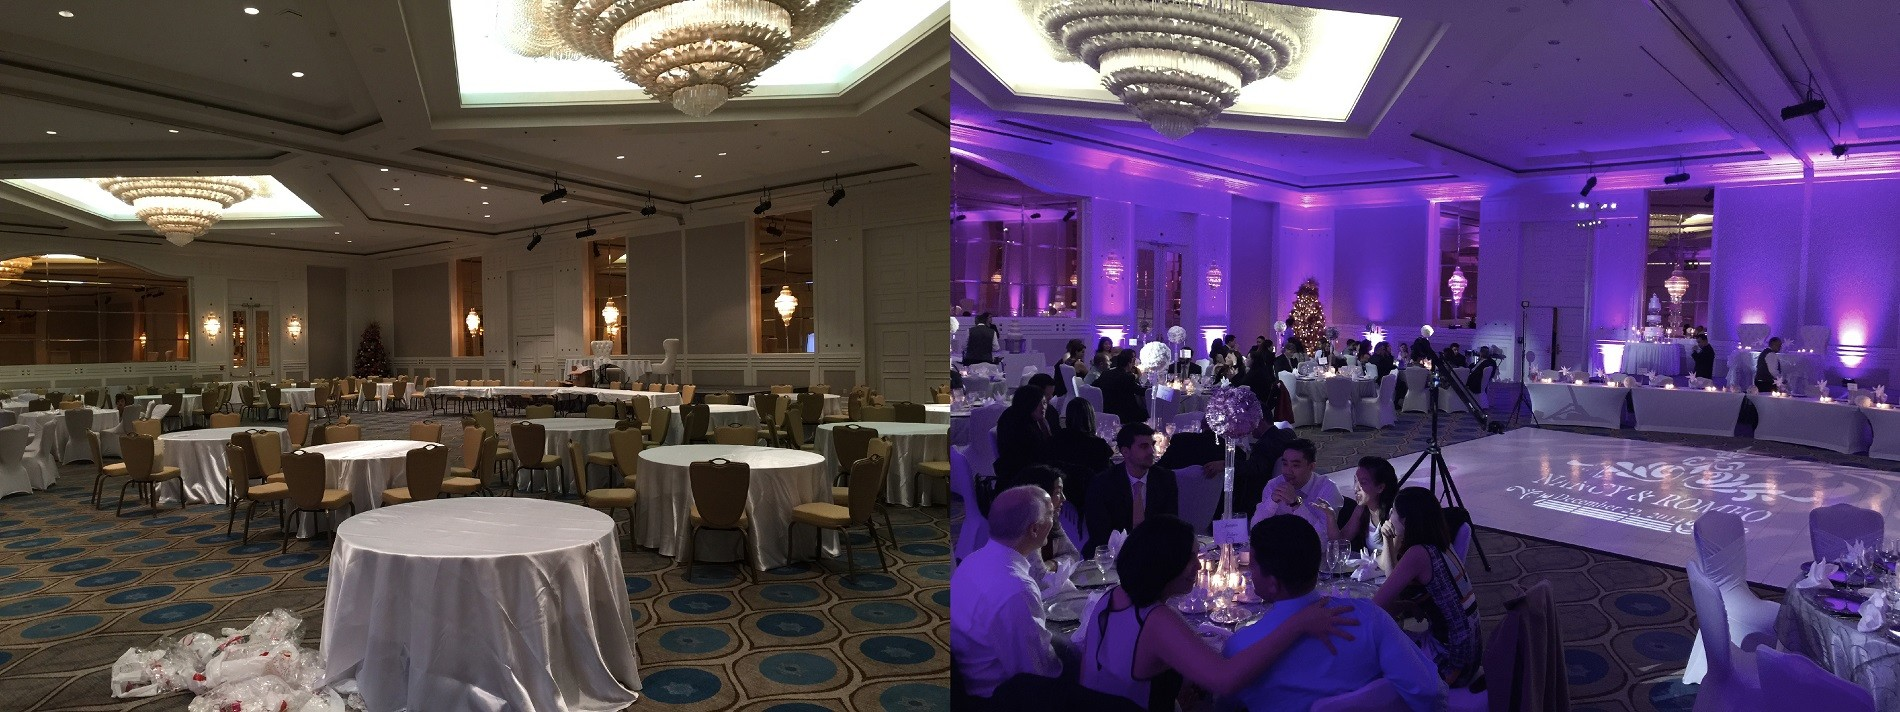 How Decor Lighting Can Make Any Venue Magical